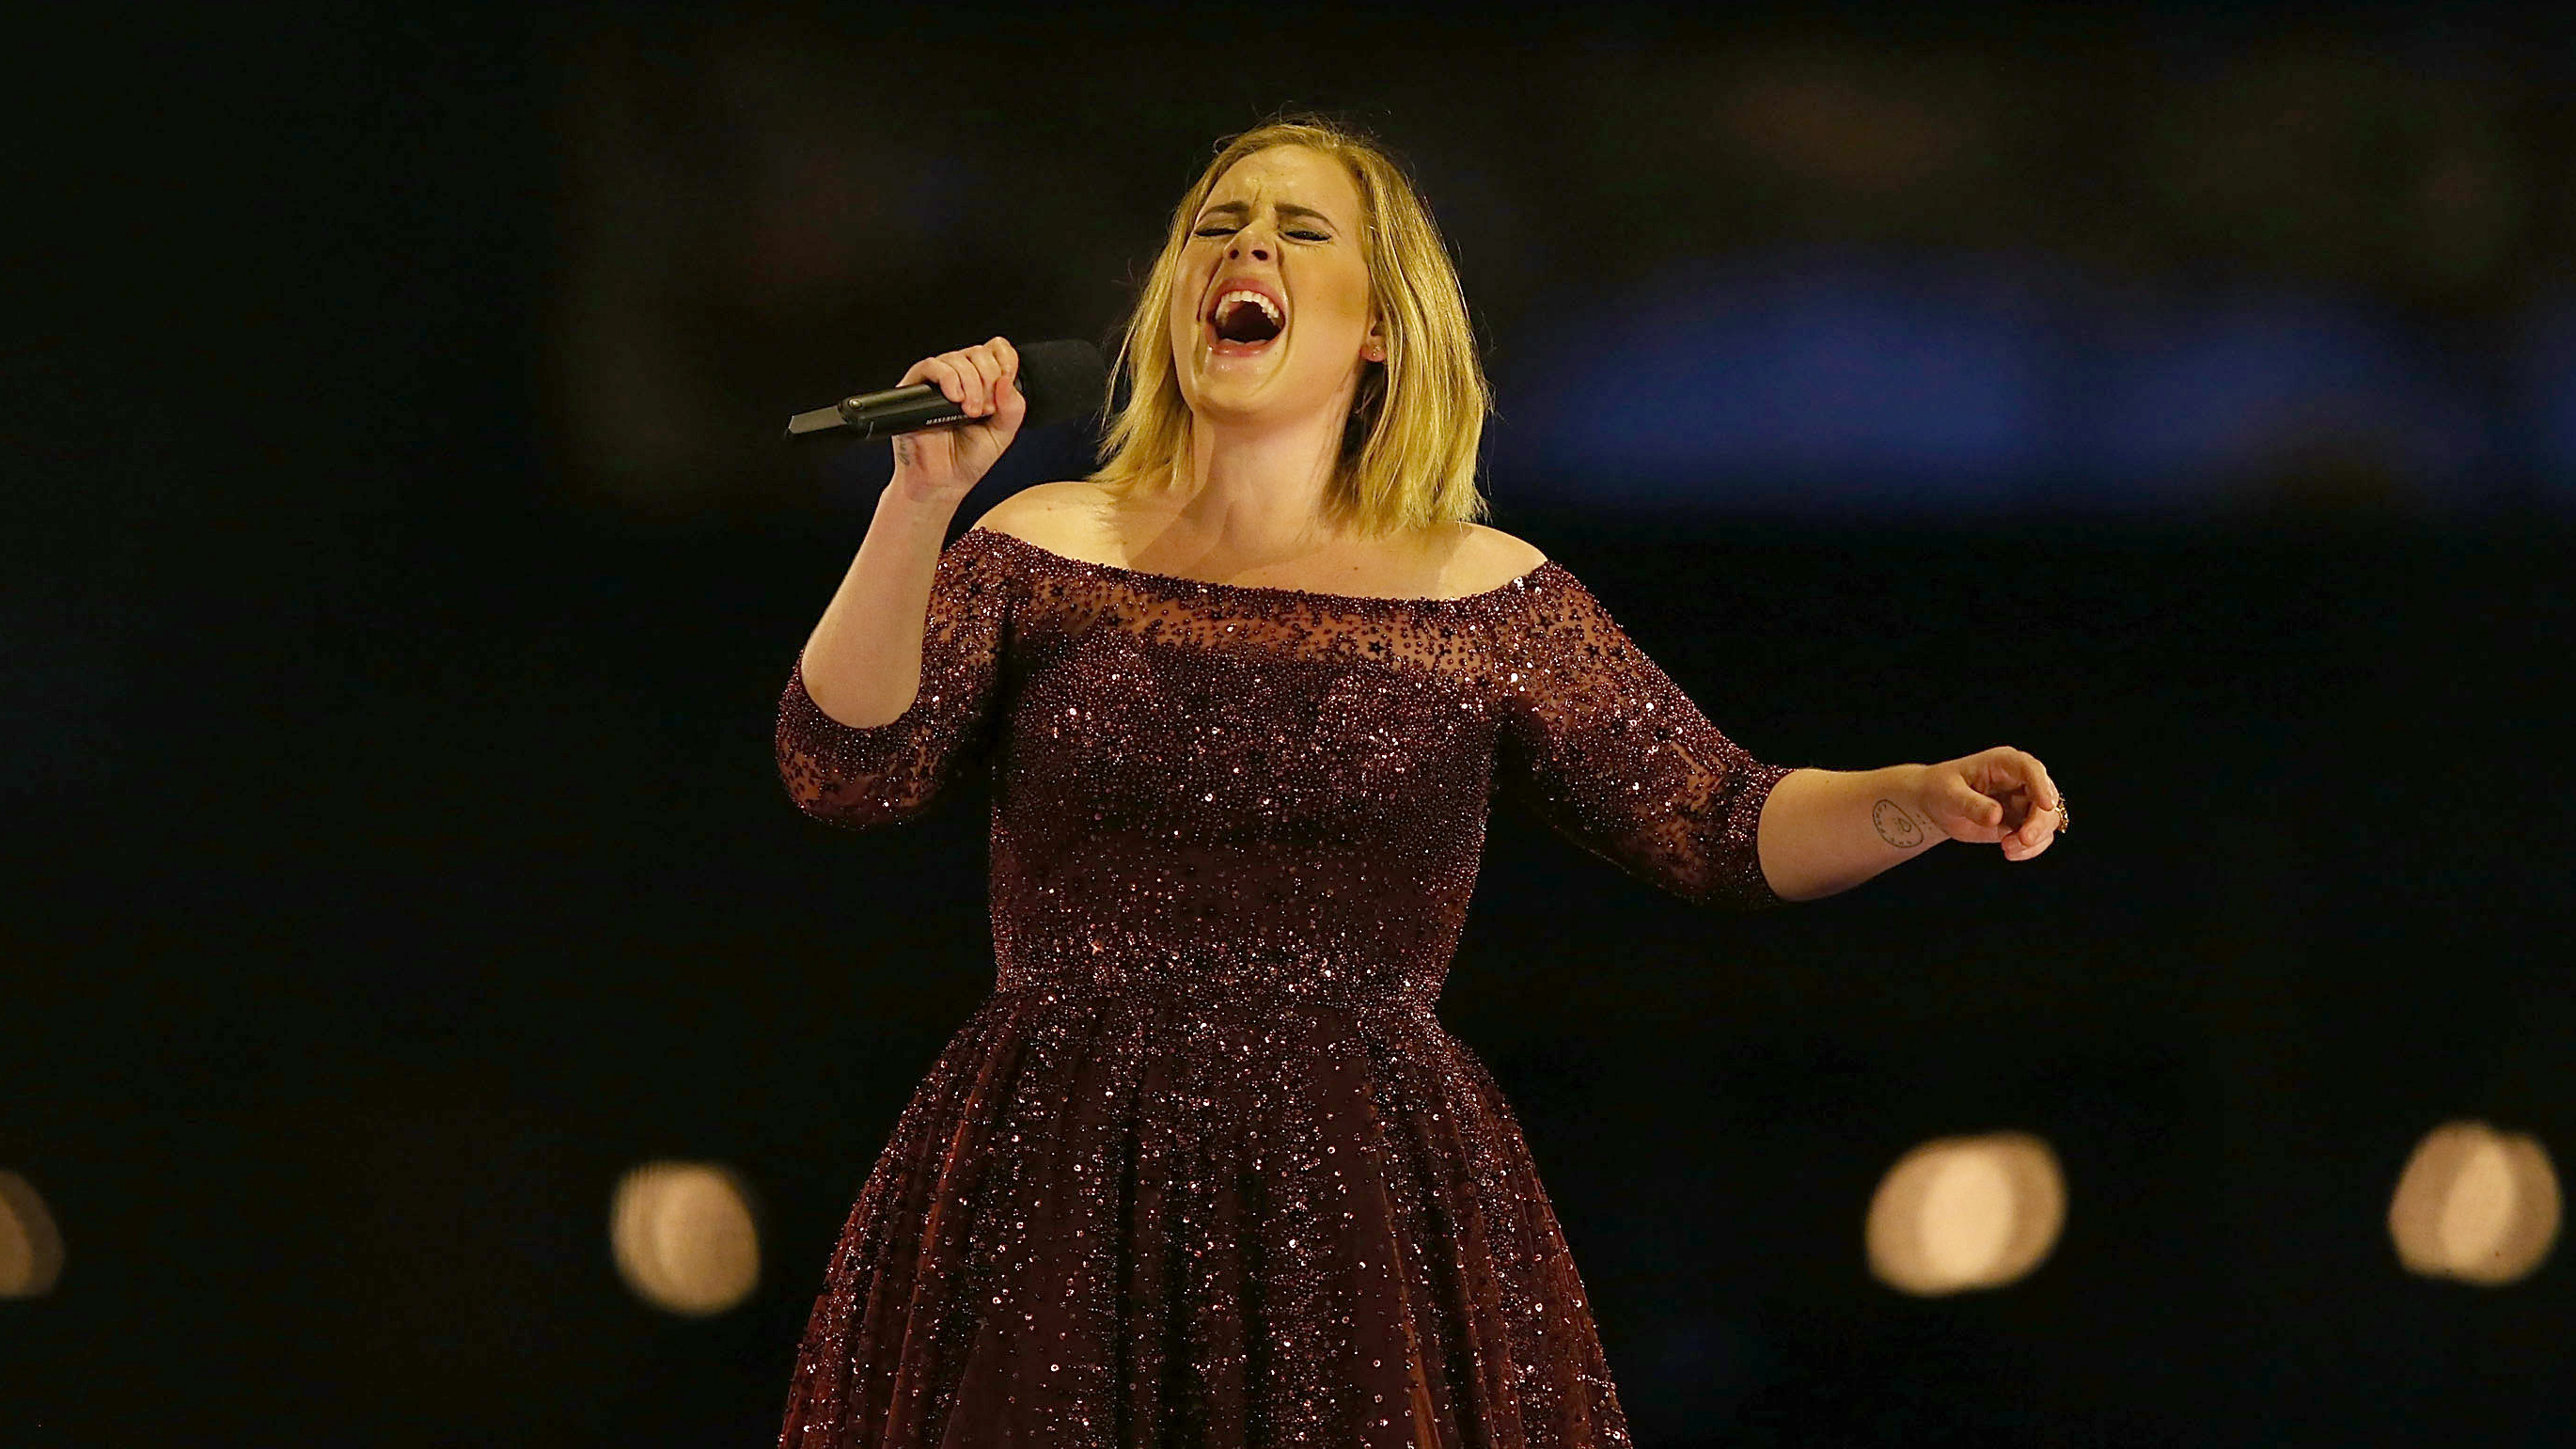 Adele Poster Live Singing Tour 25 Music Large Quality FREE P+P CHOOSE YOUR SIZE